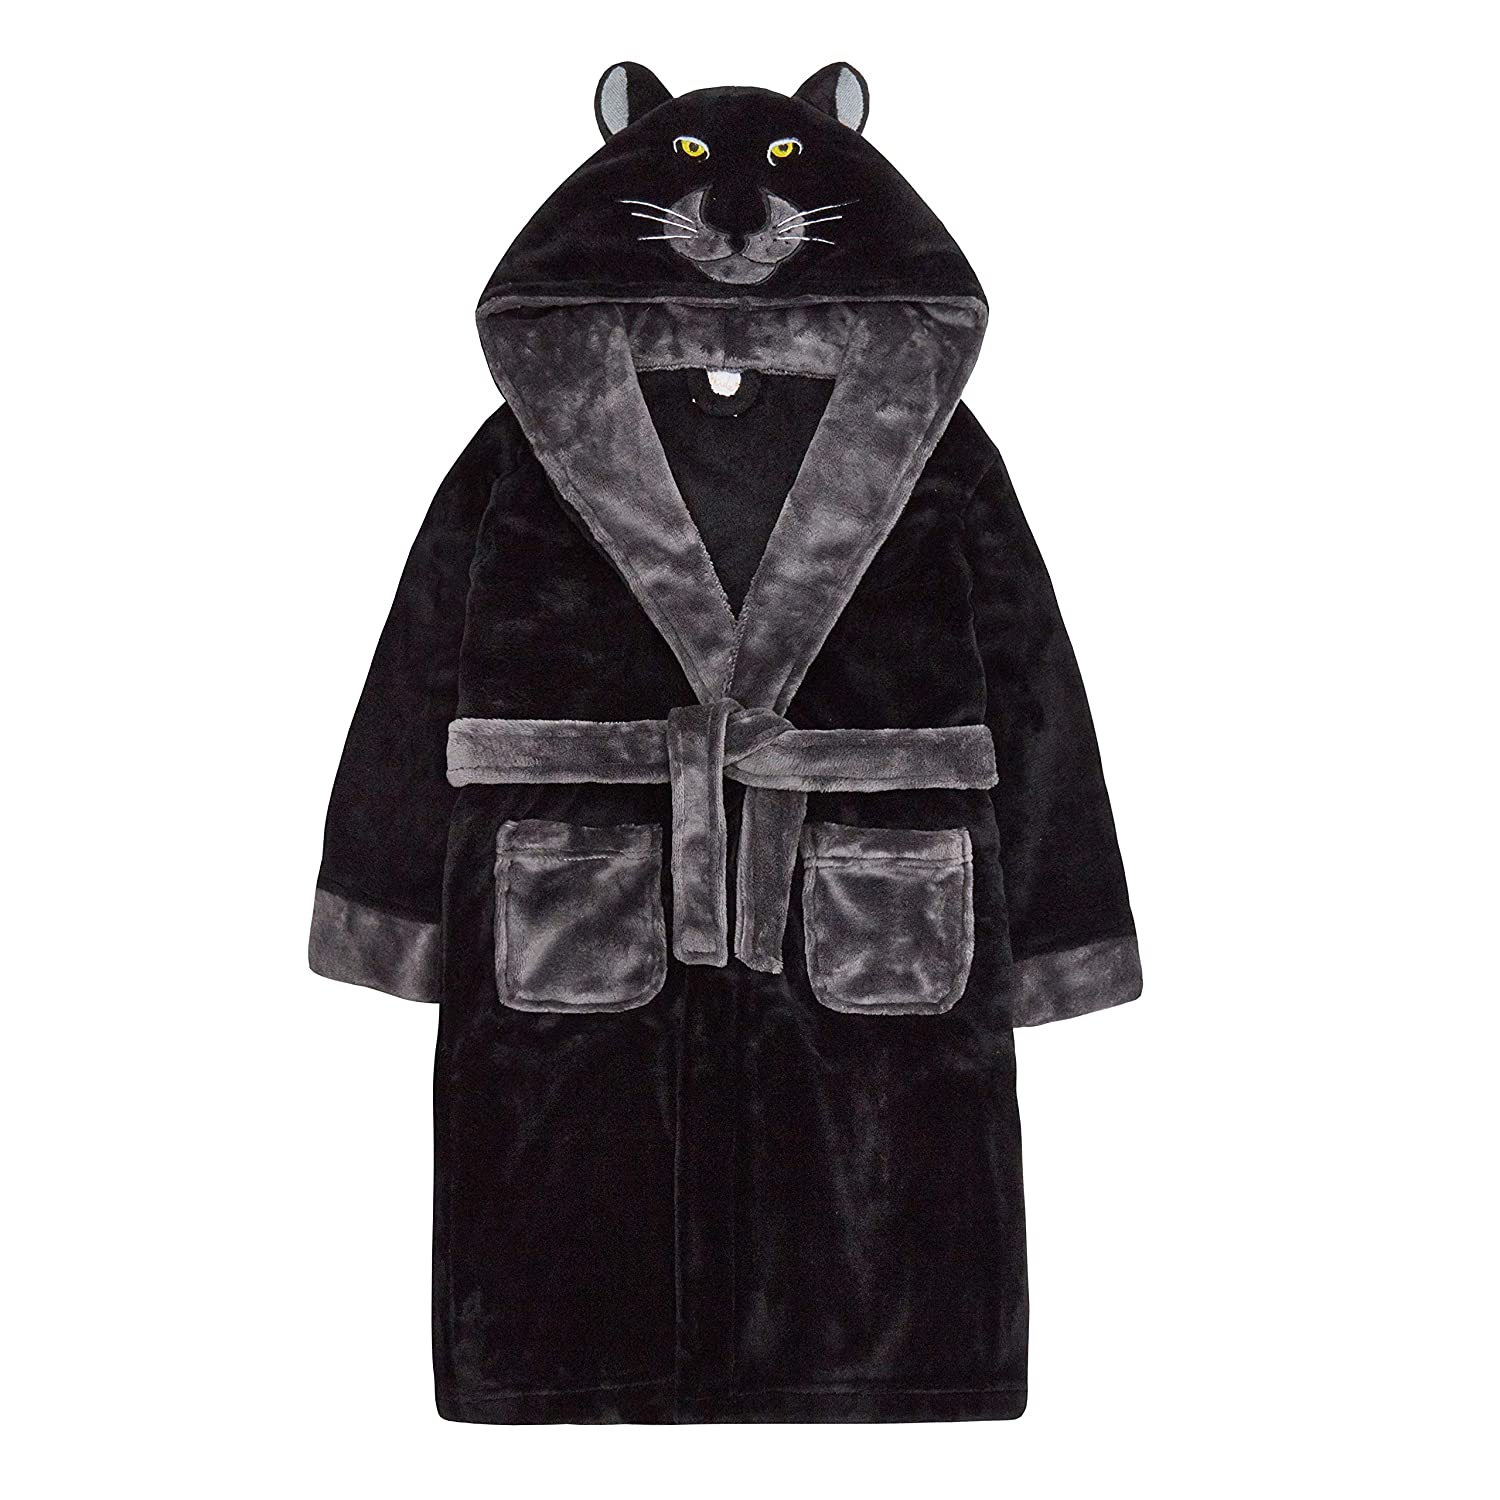 Childrens Novelty Panther Hood Plush Fleece Dressing Gown